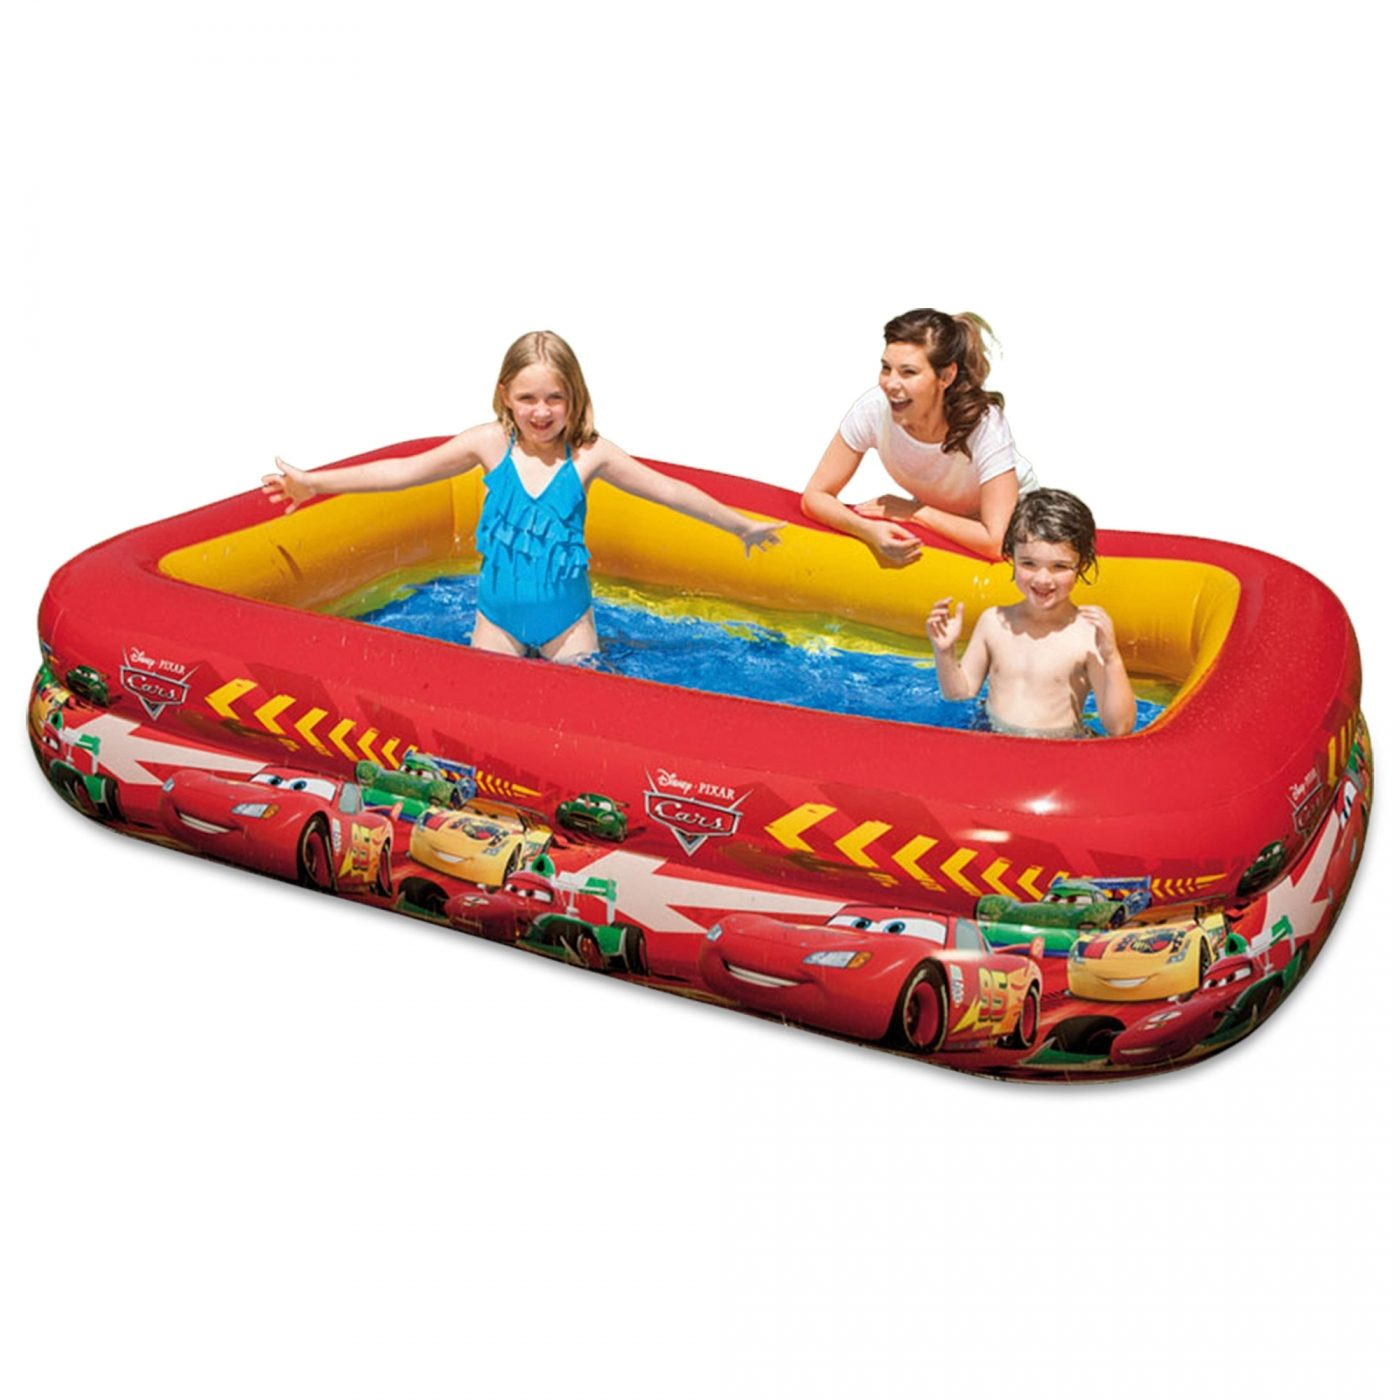 Piscina Intex Infantil Piscina Cars 262 X 175 X 56 Cm Intex En Planeta Huerto